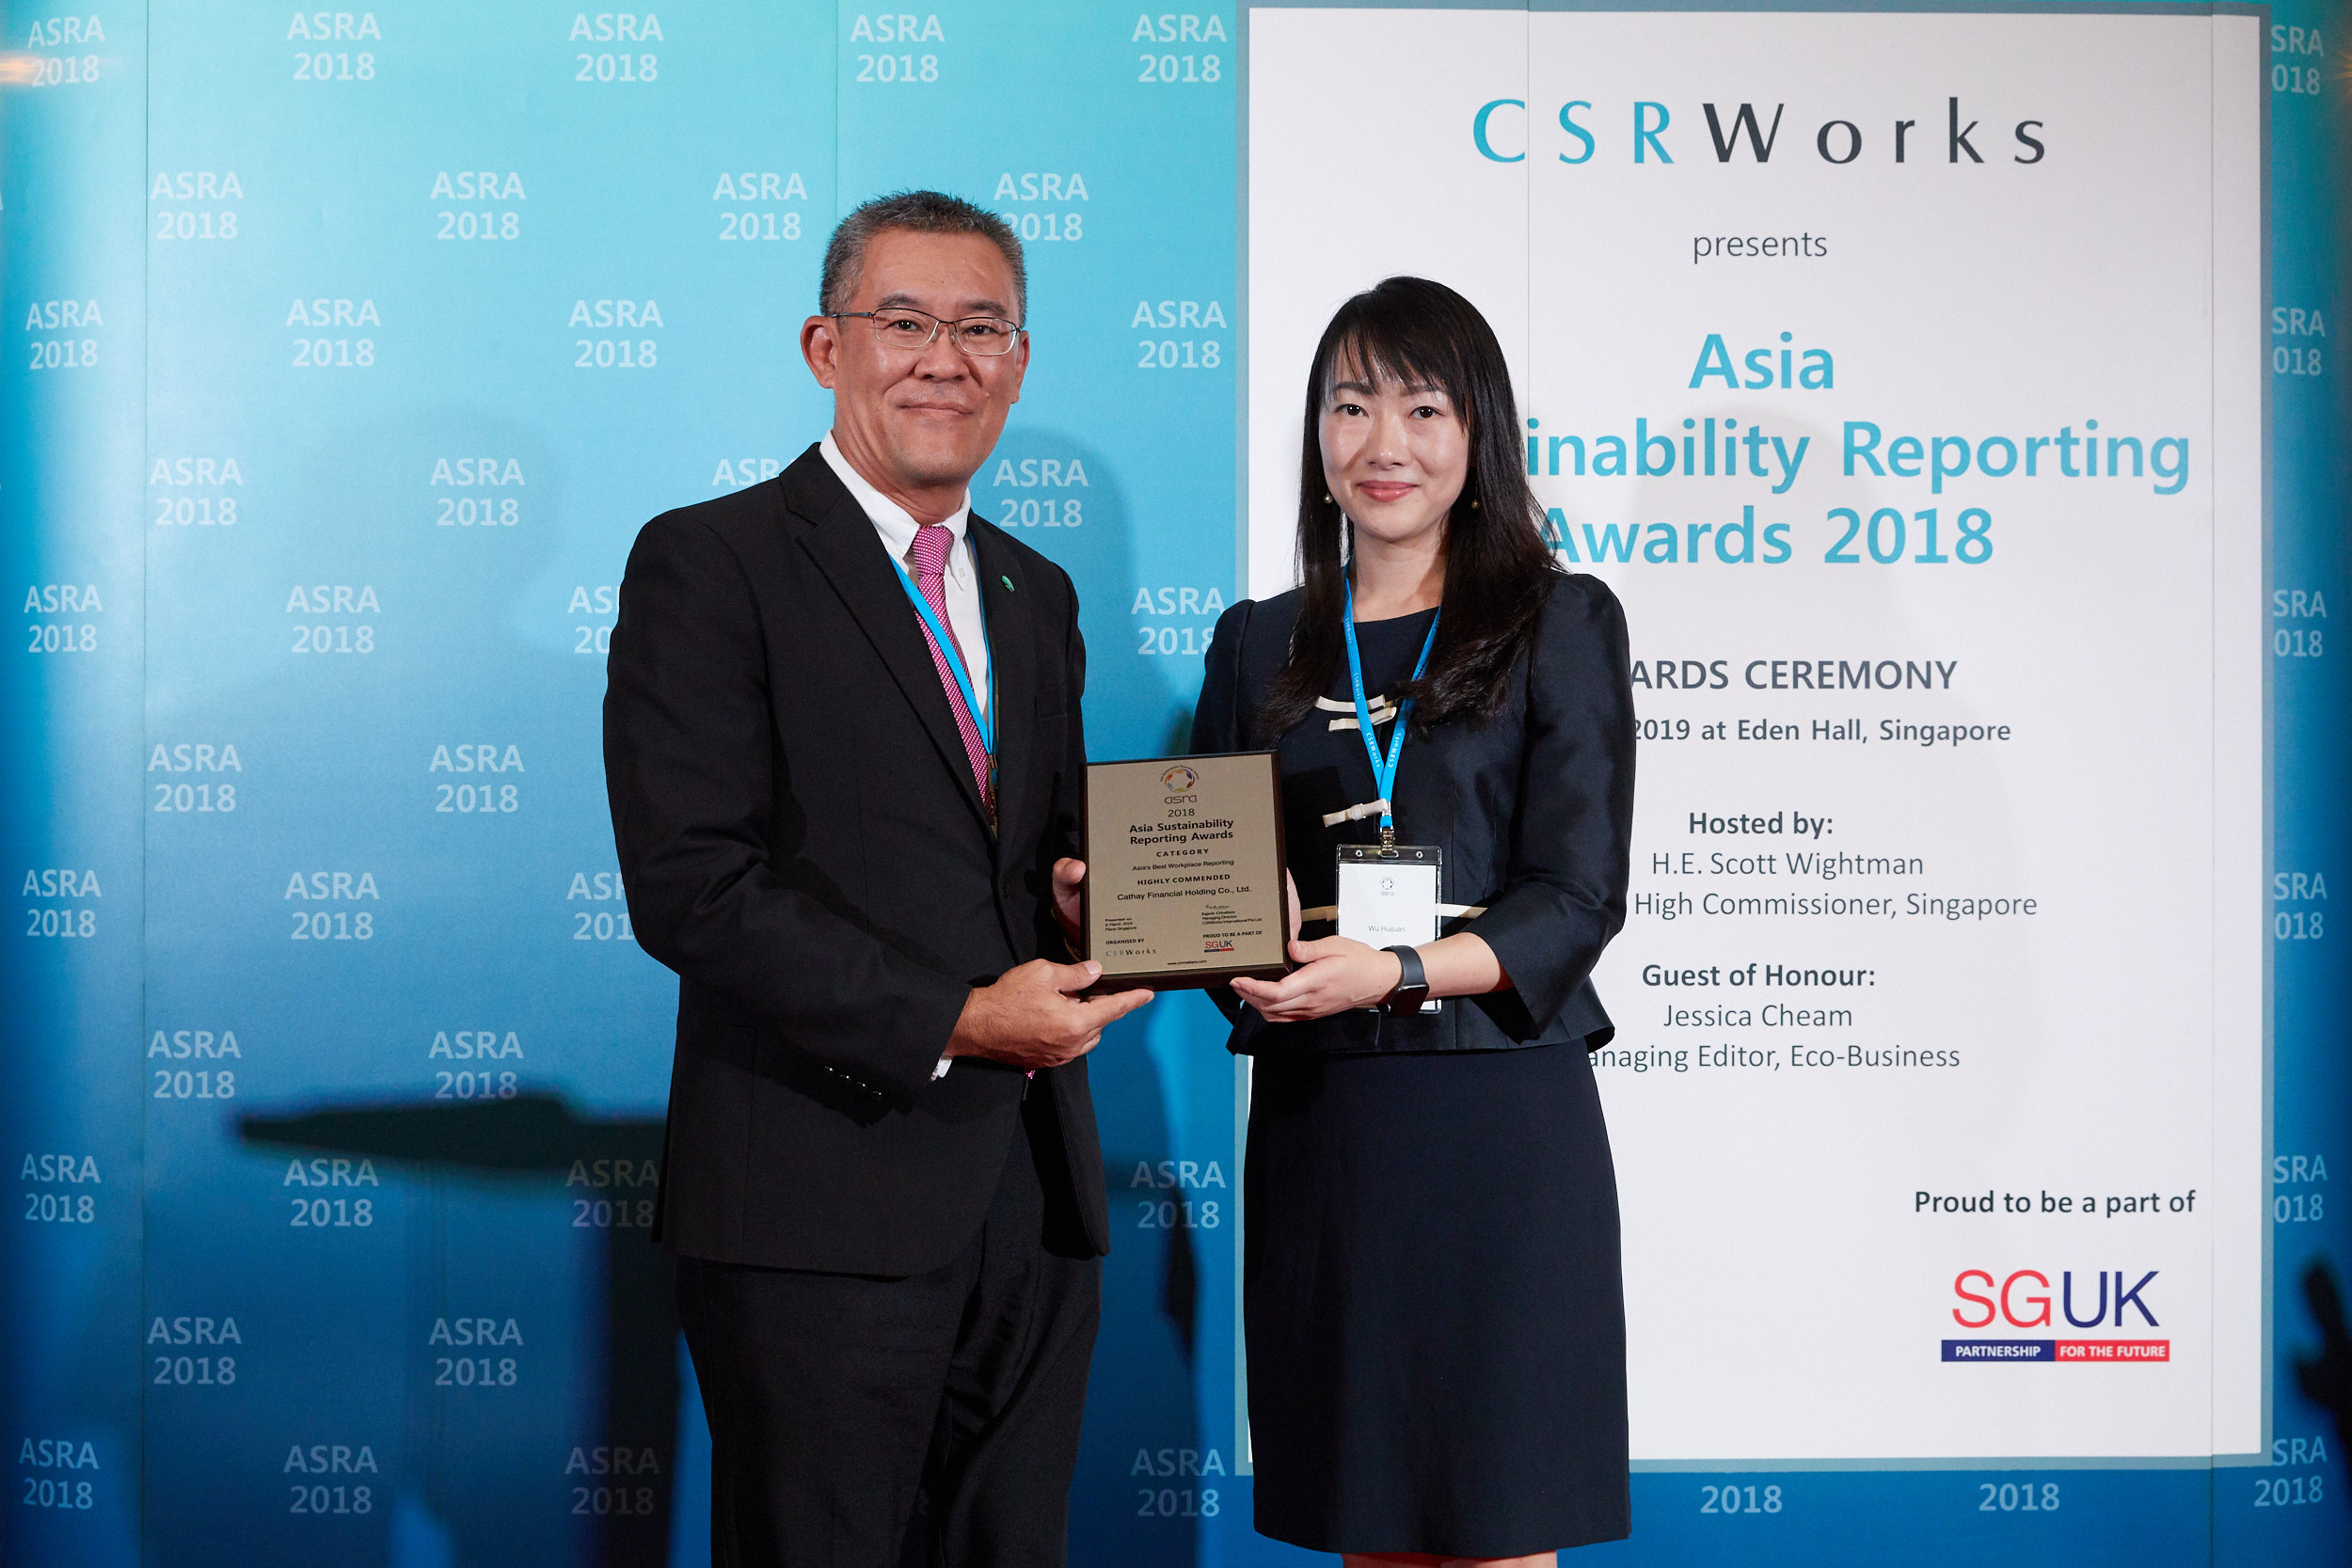 C2 – Cathay, HC, Workplace